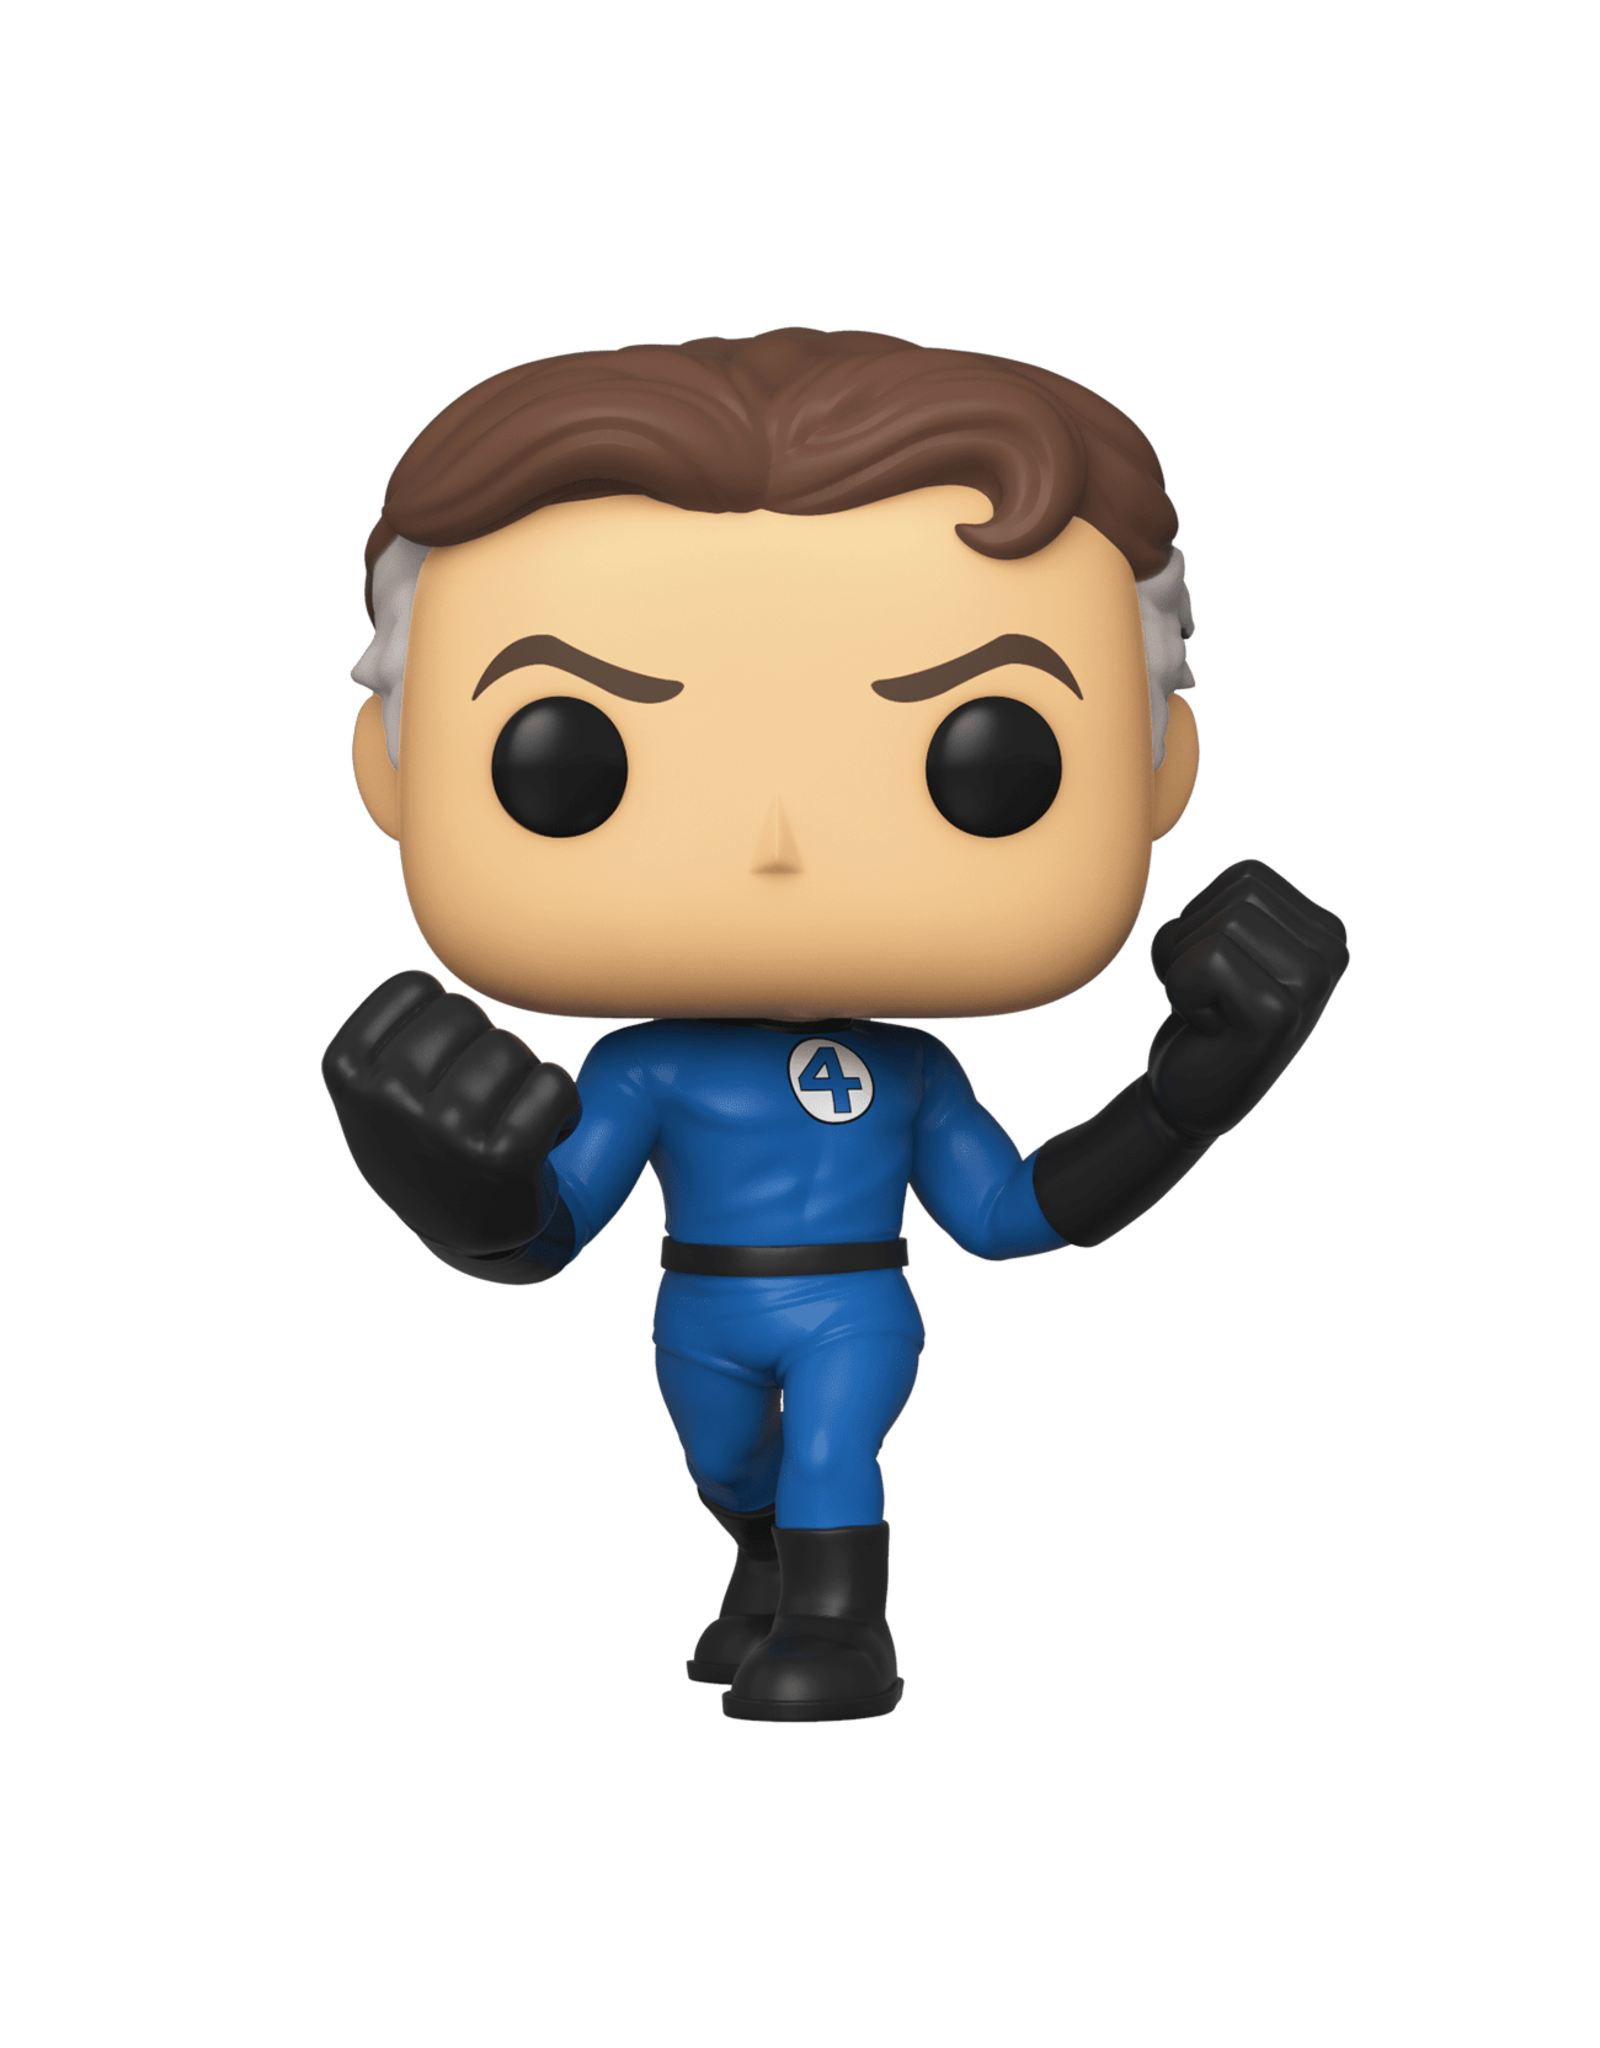 FUNKO POP MARVEL FANTASTIC FOUR MISTER FANTASTIC VINYL FIG